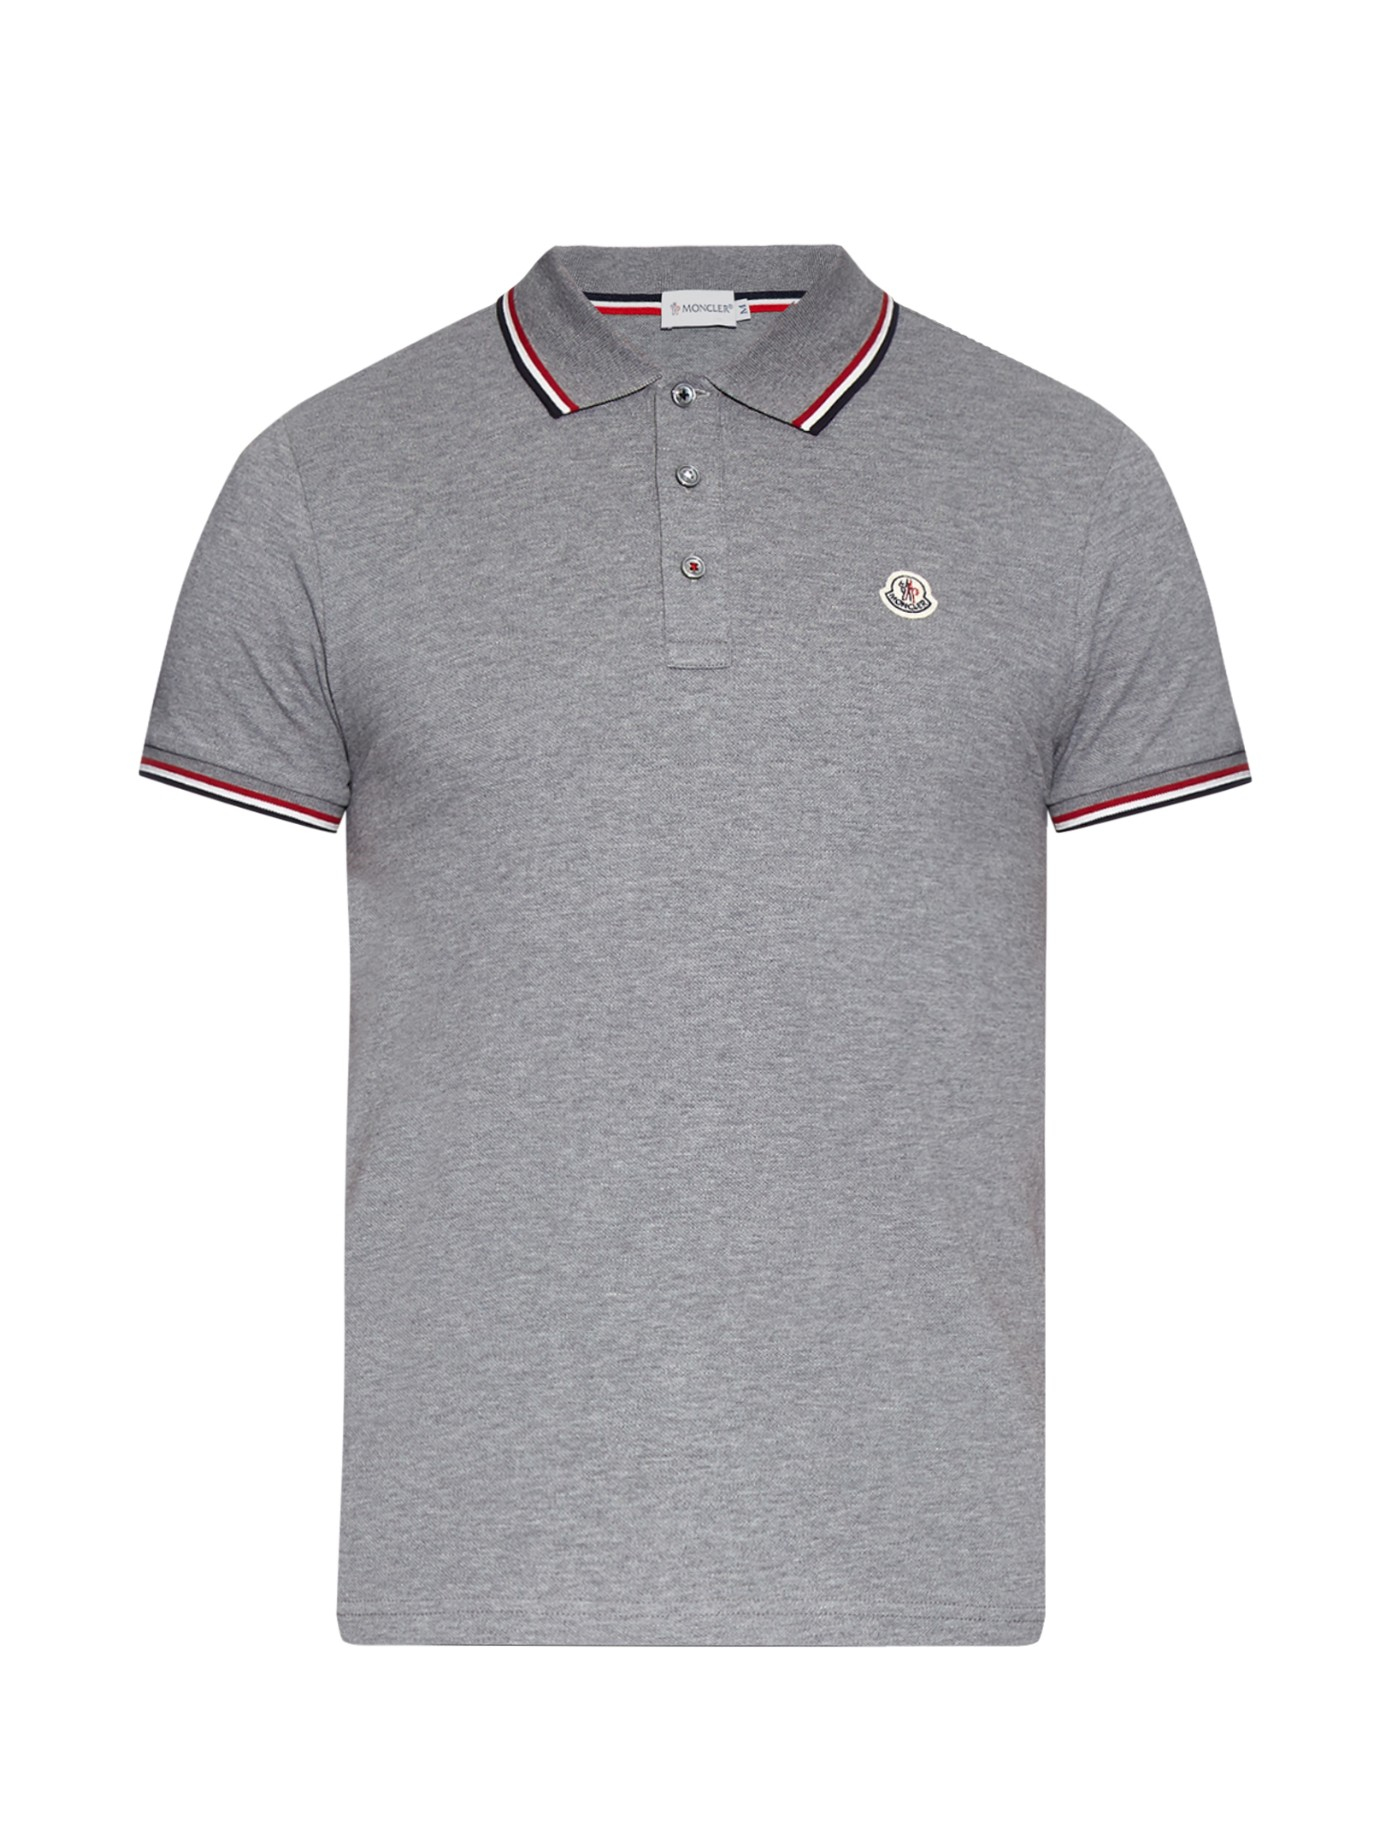 9c85aedaa Moncler Long Sleeve Polo Shirt Sale Toronto